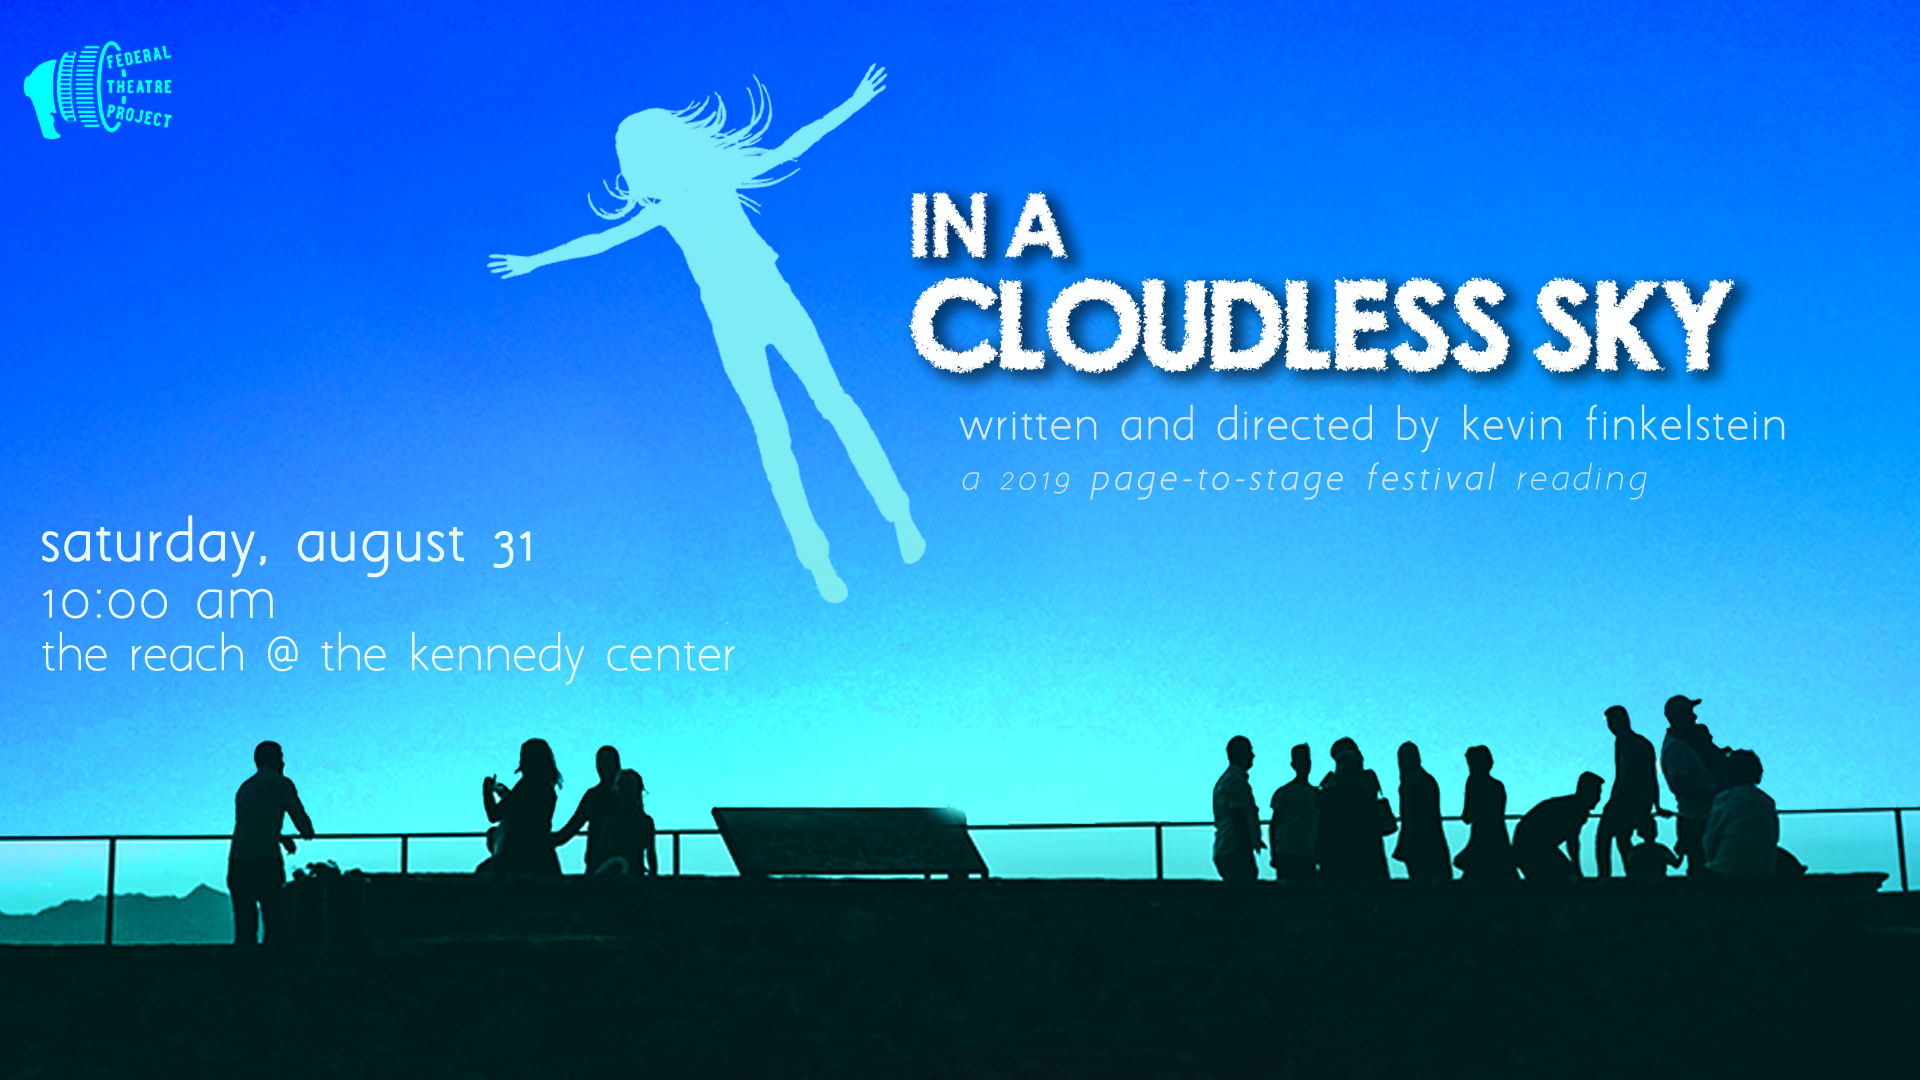 A reading at the 2019 Kennedy Center  Page-to-Stage Festival   Saturday, August 31, 2019 10:00 am in the Kennedy Center's REACH   In a Cloudless Sky,  by DC playwright  Kevin Finkelstein , explores what might happen if human beings suddenly found themselves with the ability to fly.  Cloudless  follows the story of Isabel Rohguh (Billie Krishawn) as she navigates the personal and public challenges presented by this fundamental change to humanity,  This production is a staged reading that incorporates multimedia elements, and is recommended for ages 13 and up.  Admission is free, and the 90-minute production will be followed by a short audience feedback Q&A with the playwright. Audience members should gather in the Hall of Nations, to be escorted to THE REACH by Kennedy Center staff.